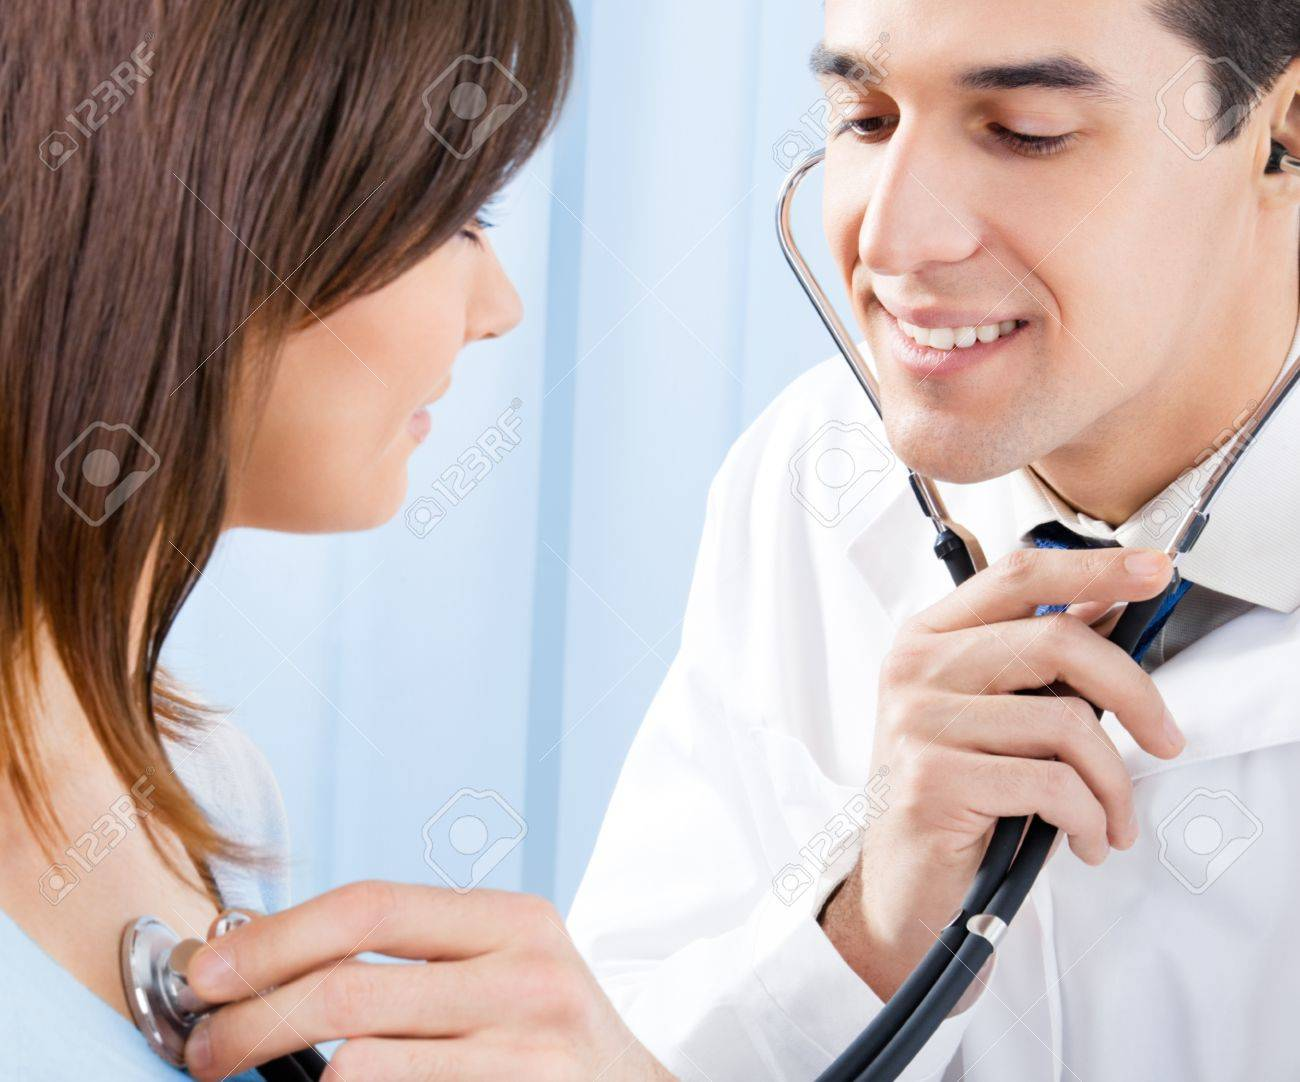 Happy smiling doctor with stethoscope and female patient at office Stock Photo - 12074553